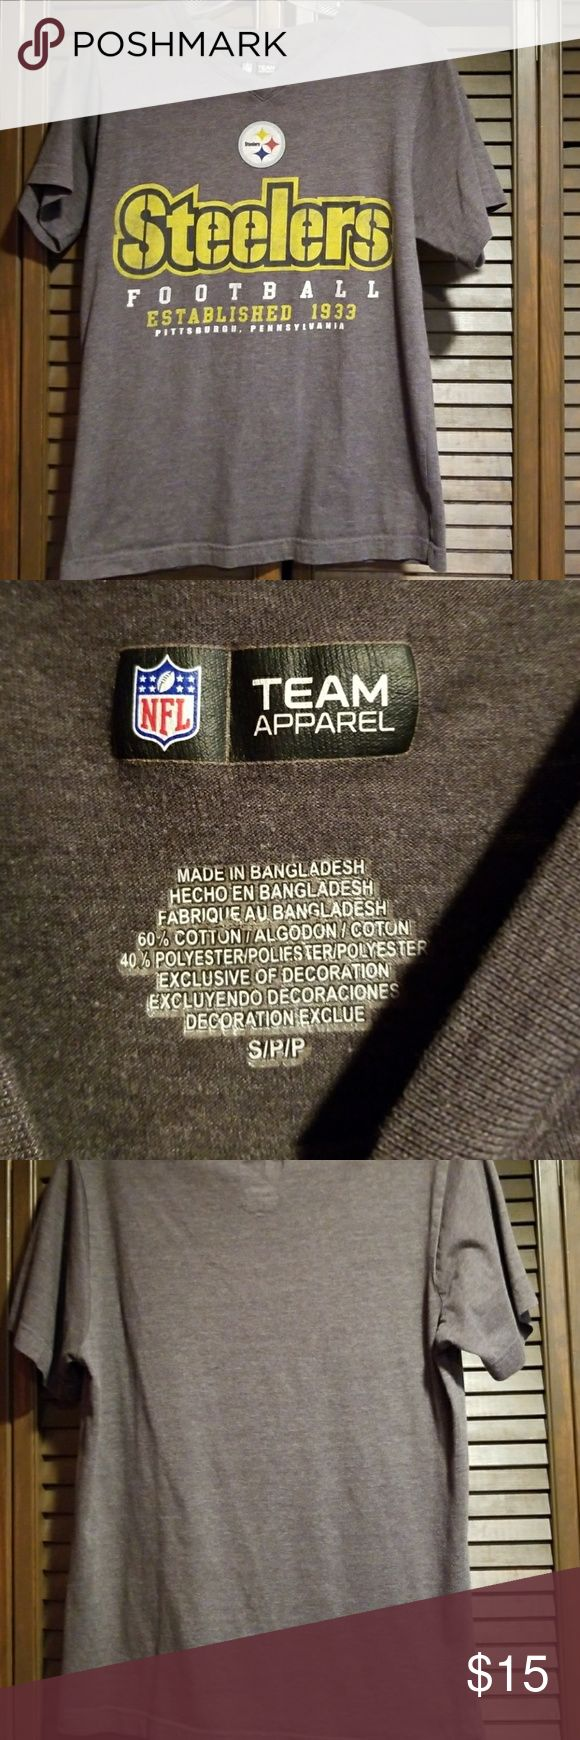 Steelers t-shirt Lightly worn, in very good condition just doesn't fit me anymore. I bought it from the NFL website nfl Tops